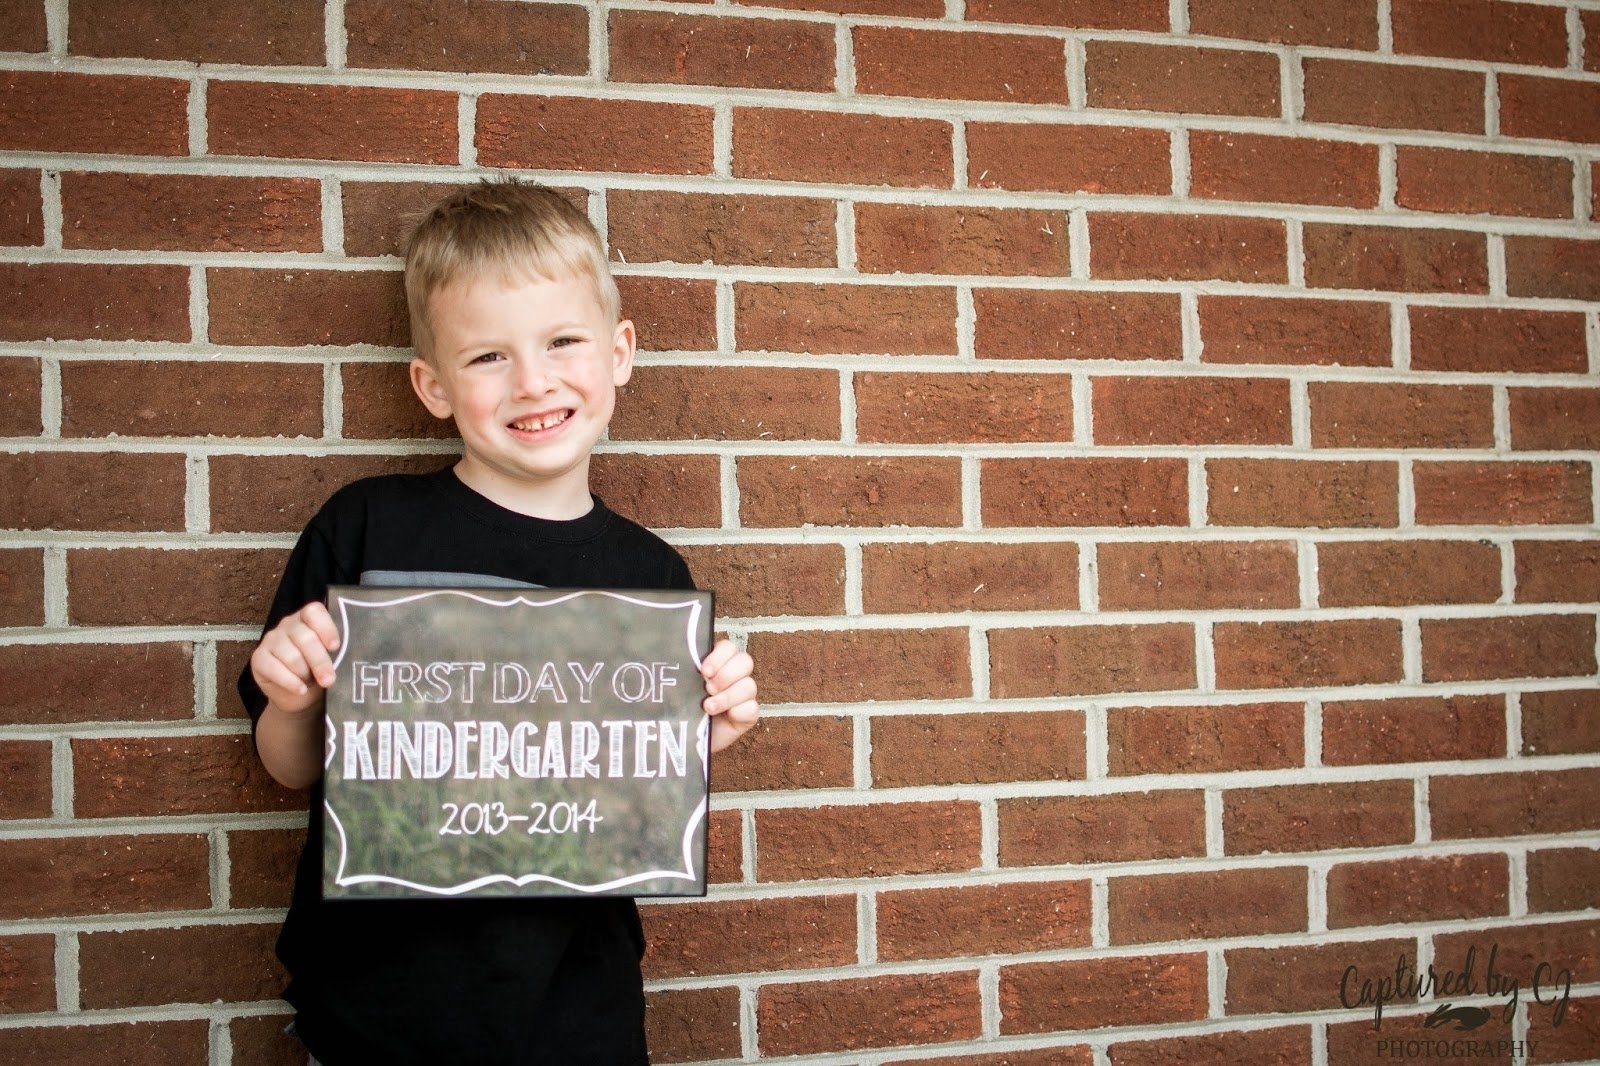 10 Spectacular First Day Of Kindergarten Picture Ideas capturedcj photography first day of kindergarten